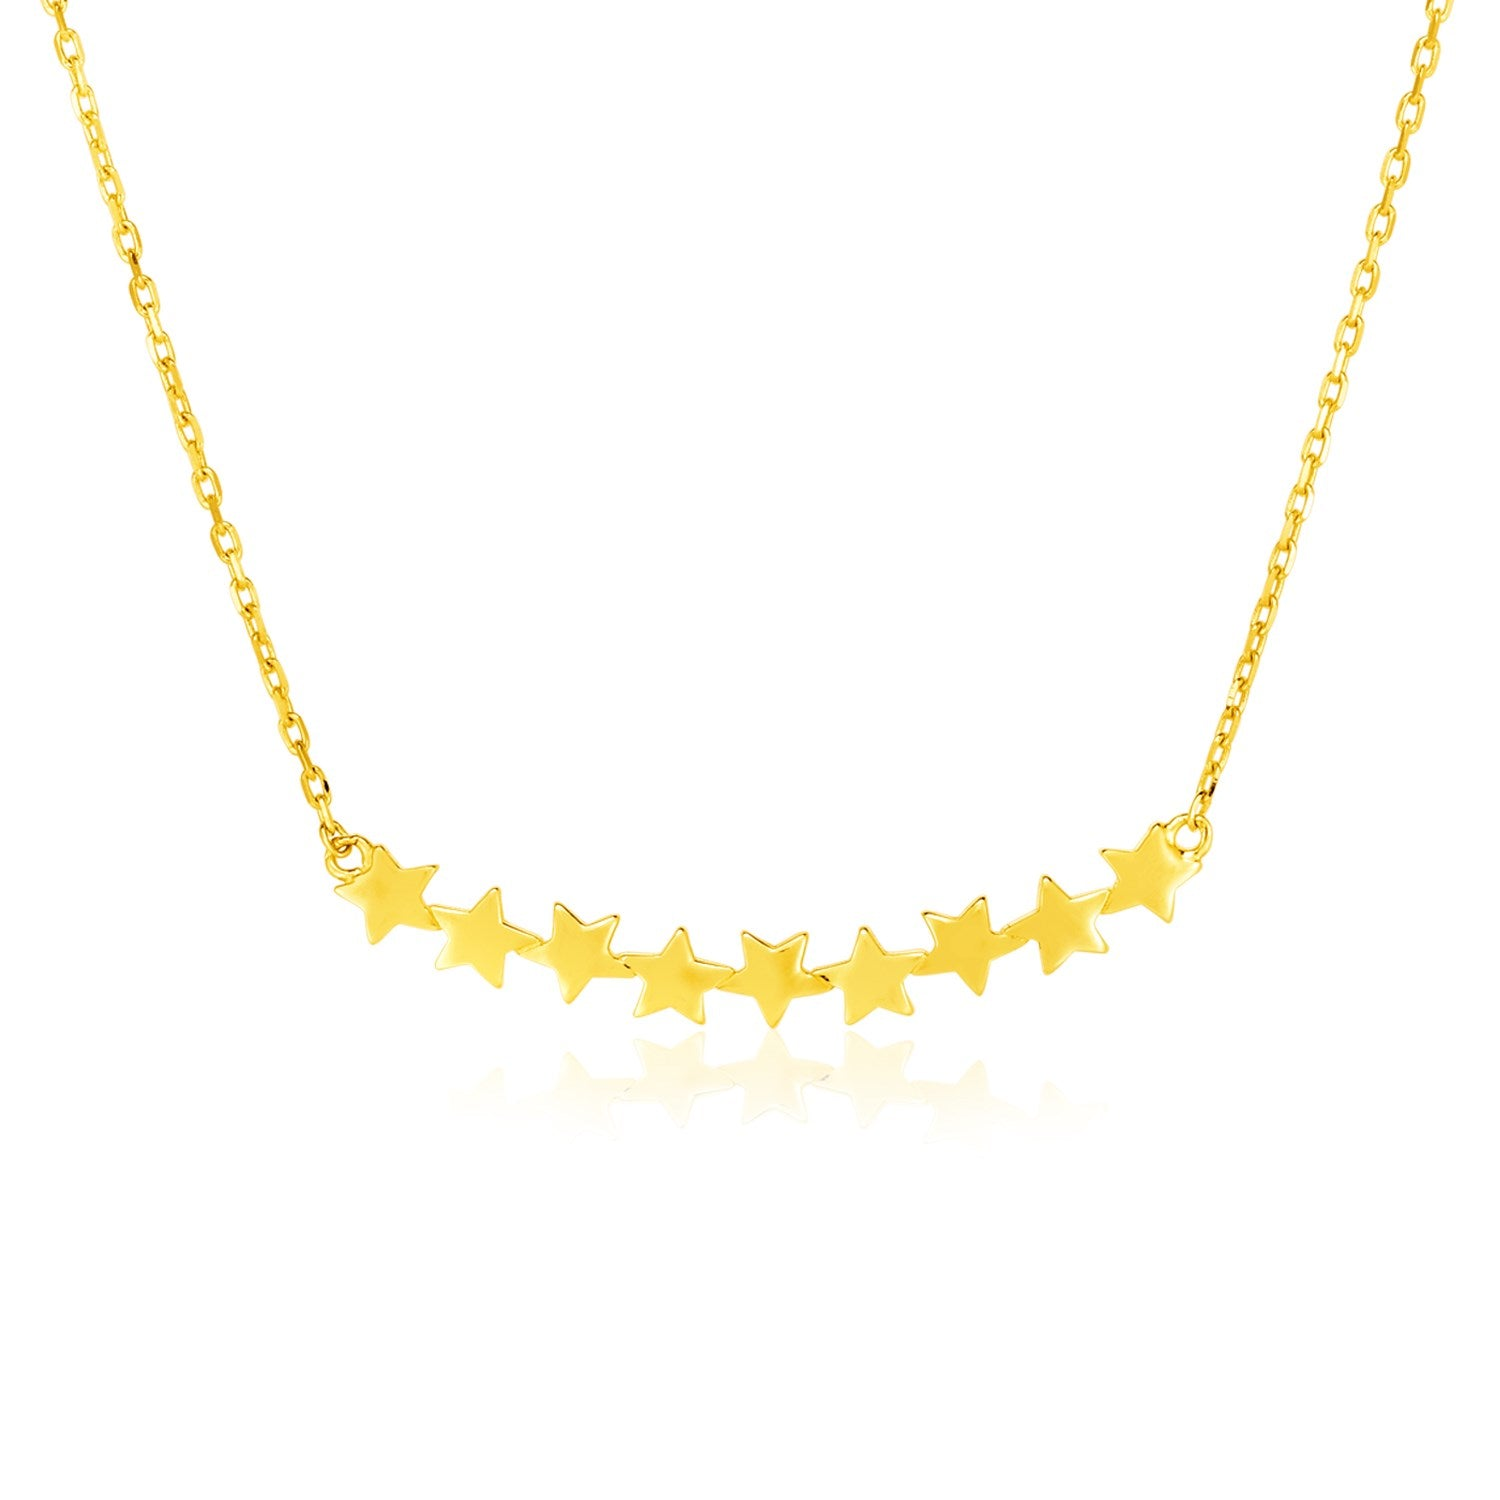 14k Yellow Gold 18 inch Necklace with Curve of Stars